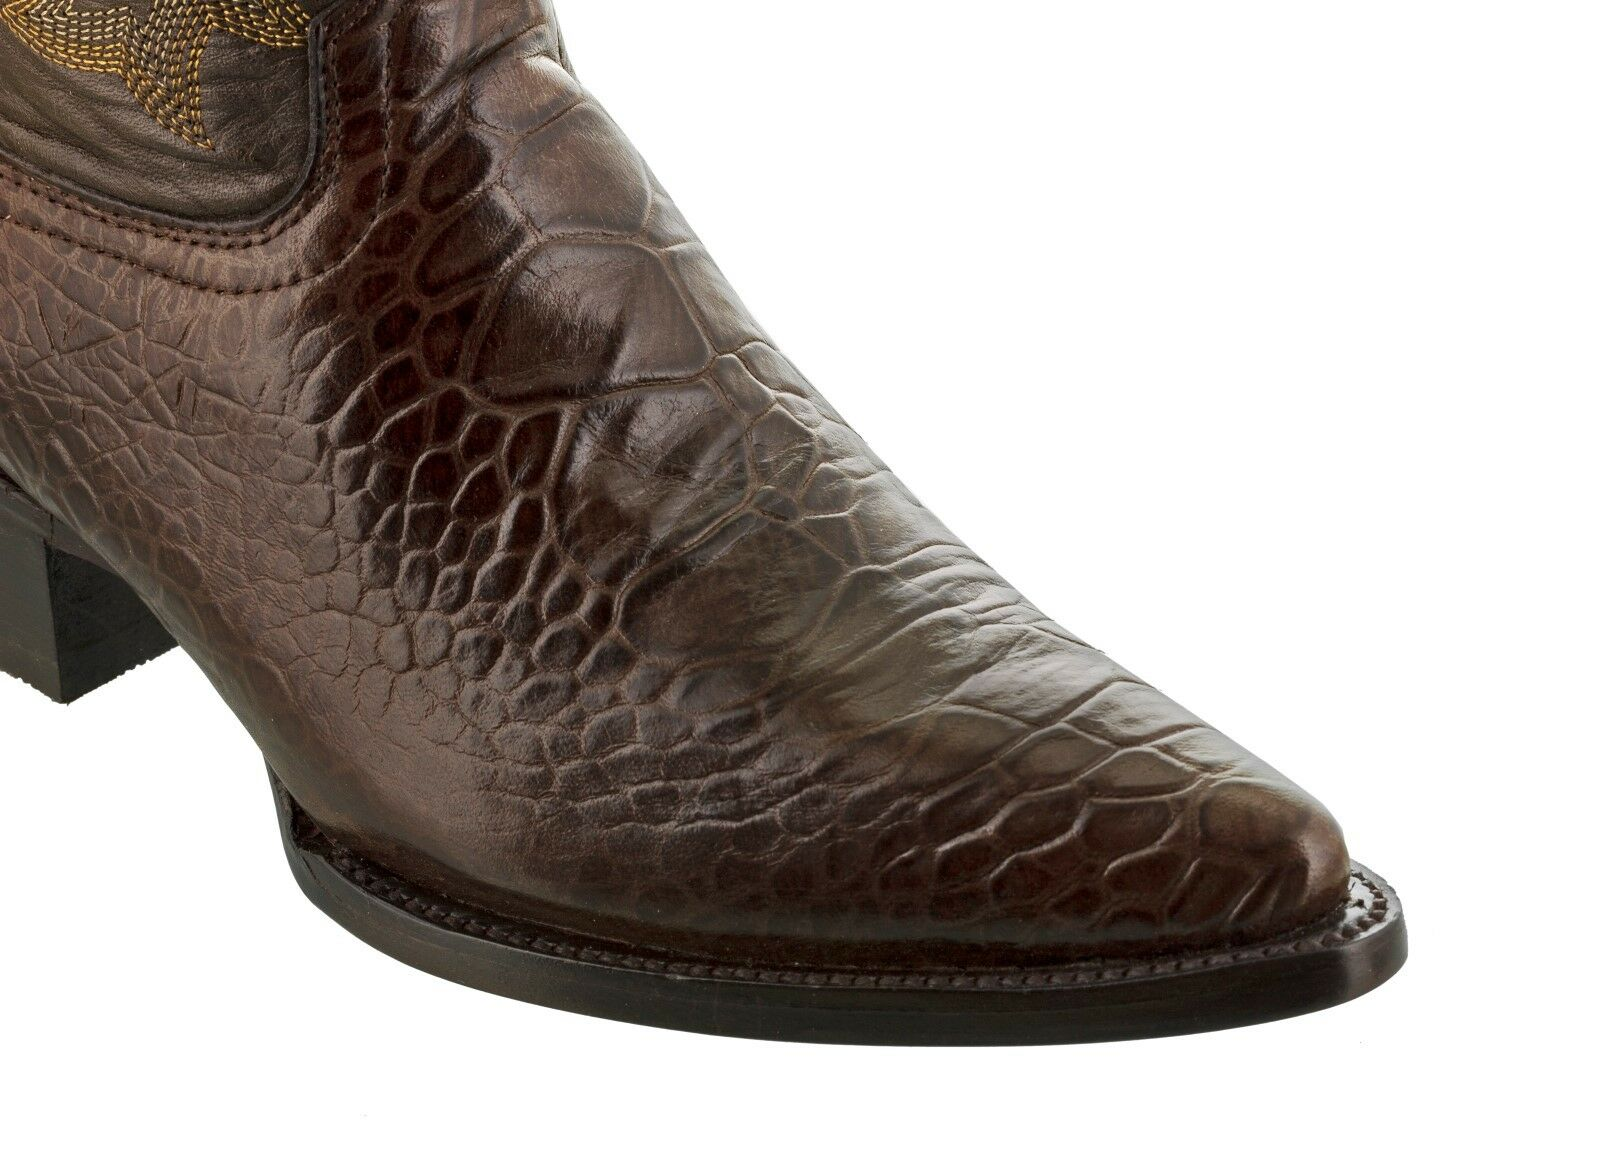 Mens Exotic Crocodile Sea Turtle Turtle Turtle Design Marrone Western Leather Cowboy stivali New fa669e